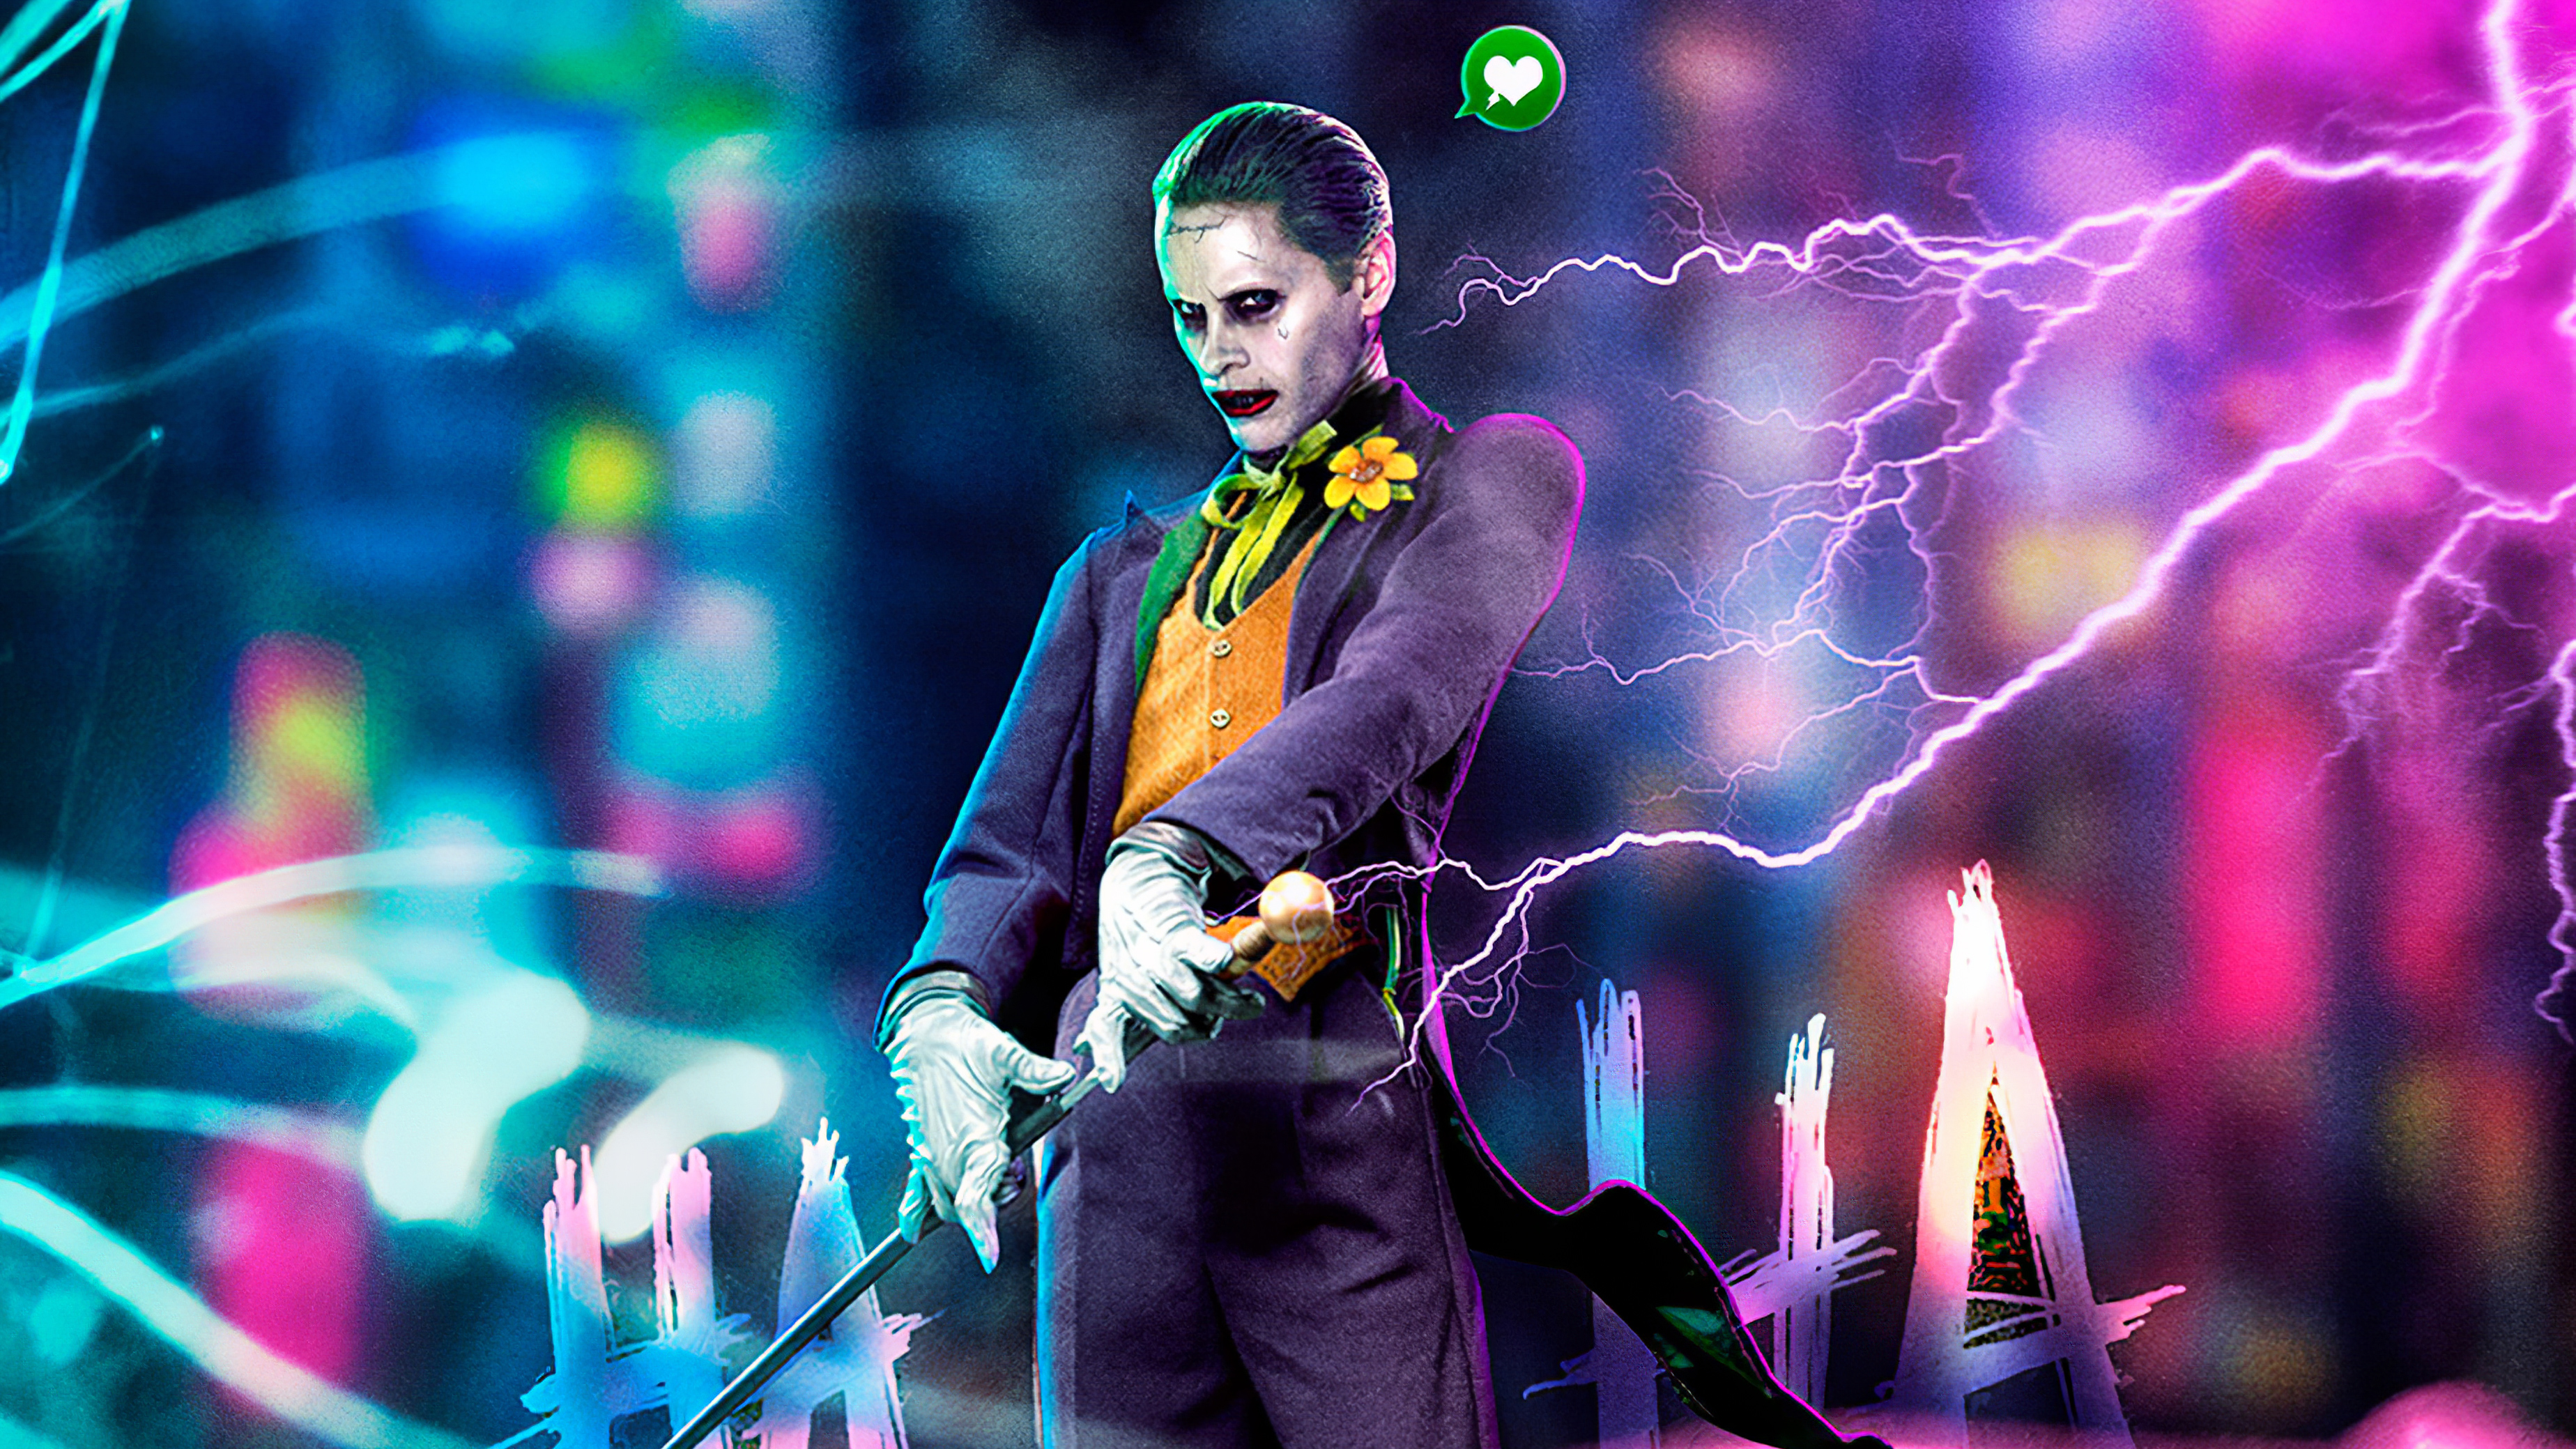 Jared Leto Joker Cyberpunk Art 4k Hd Superheroes 4k Wallpapers Images Backgrounds Photos And Pictures